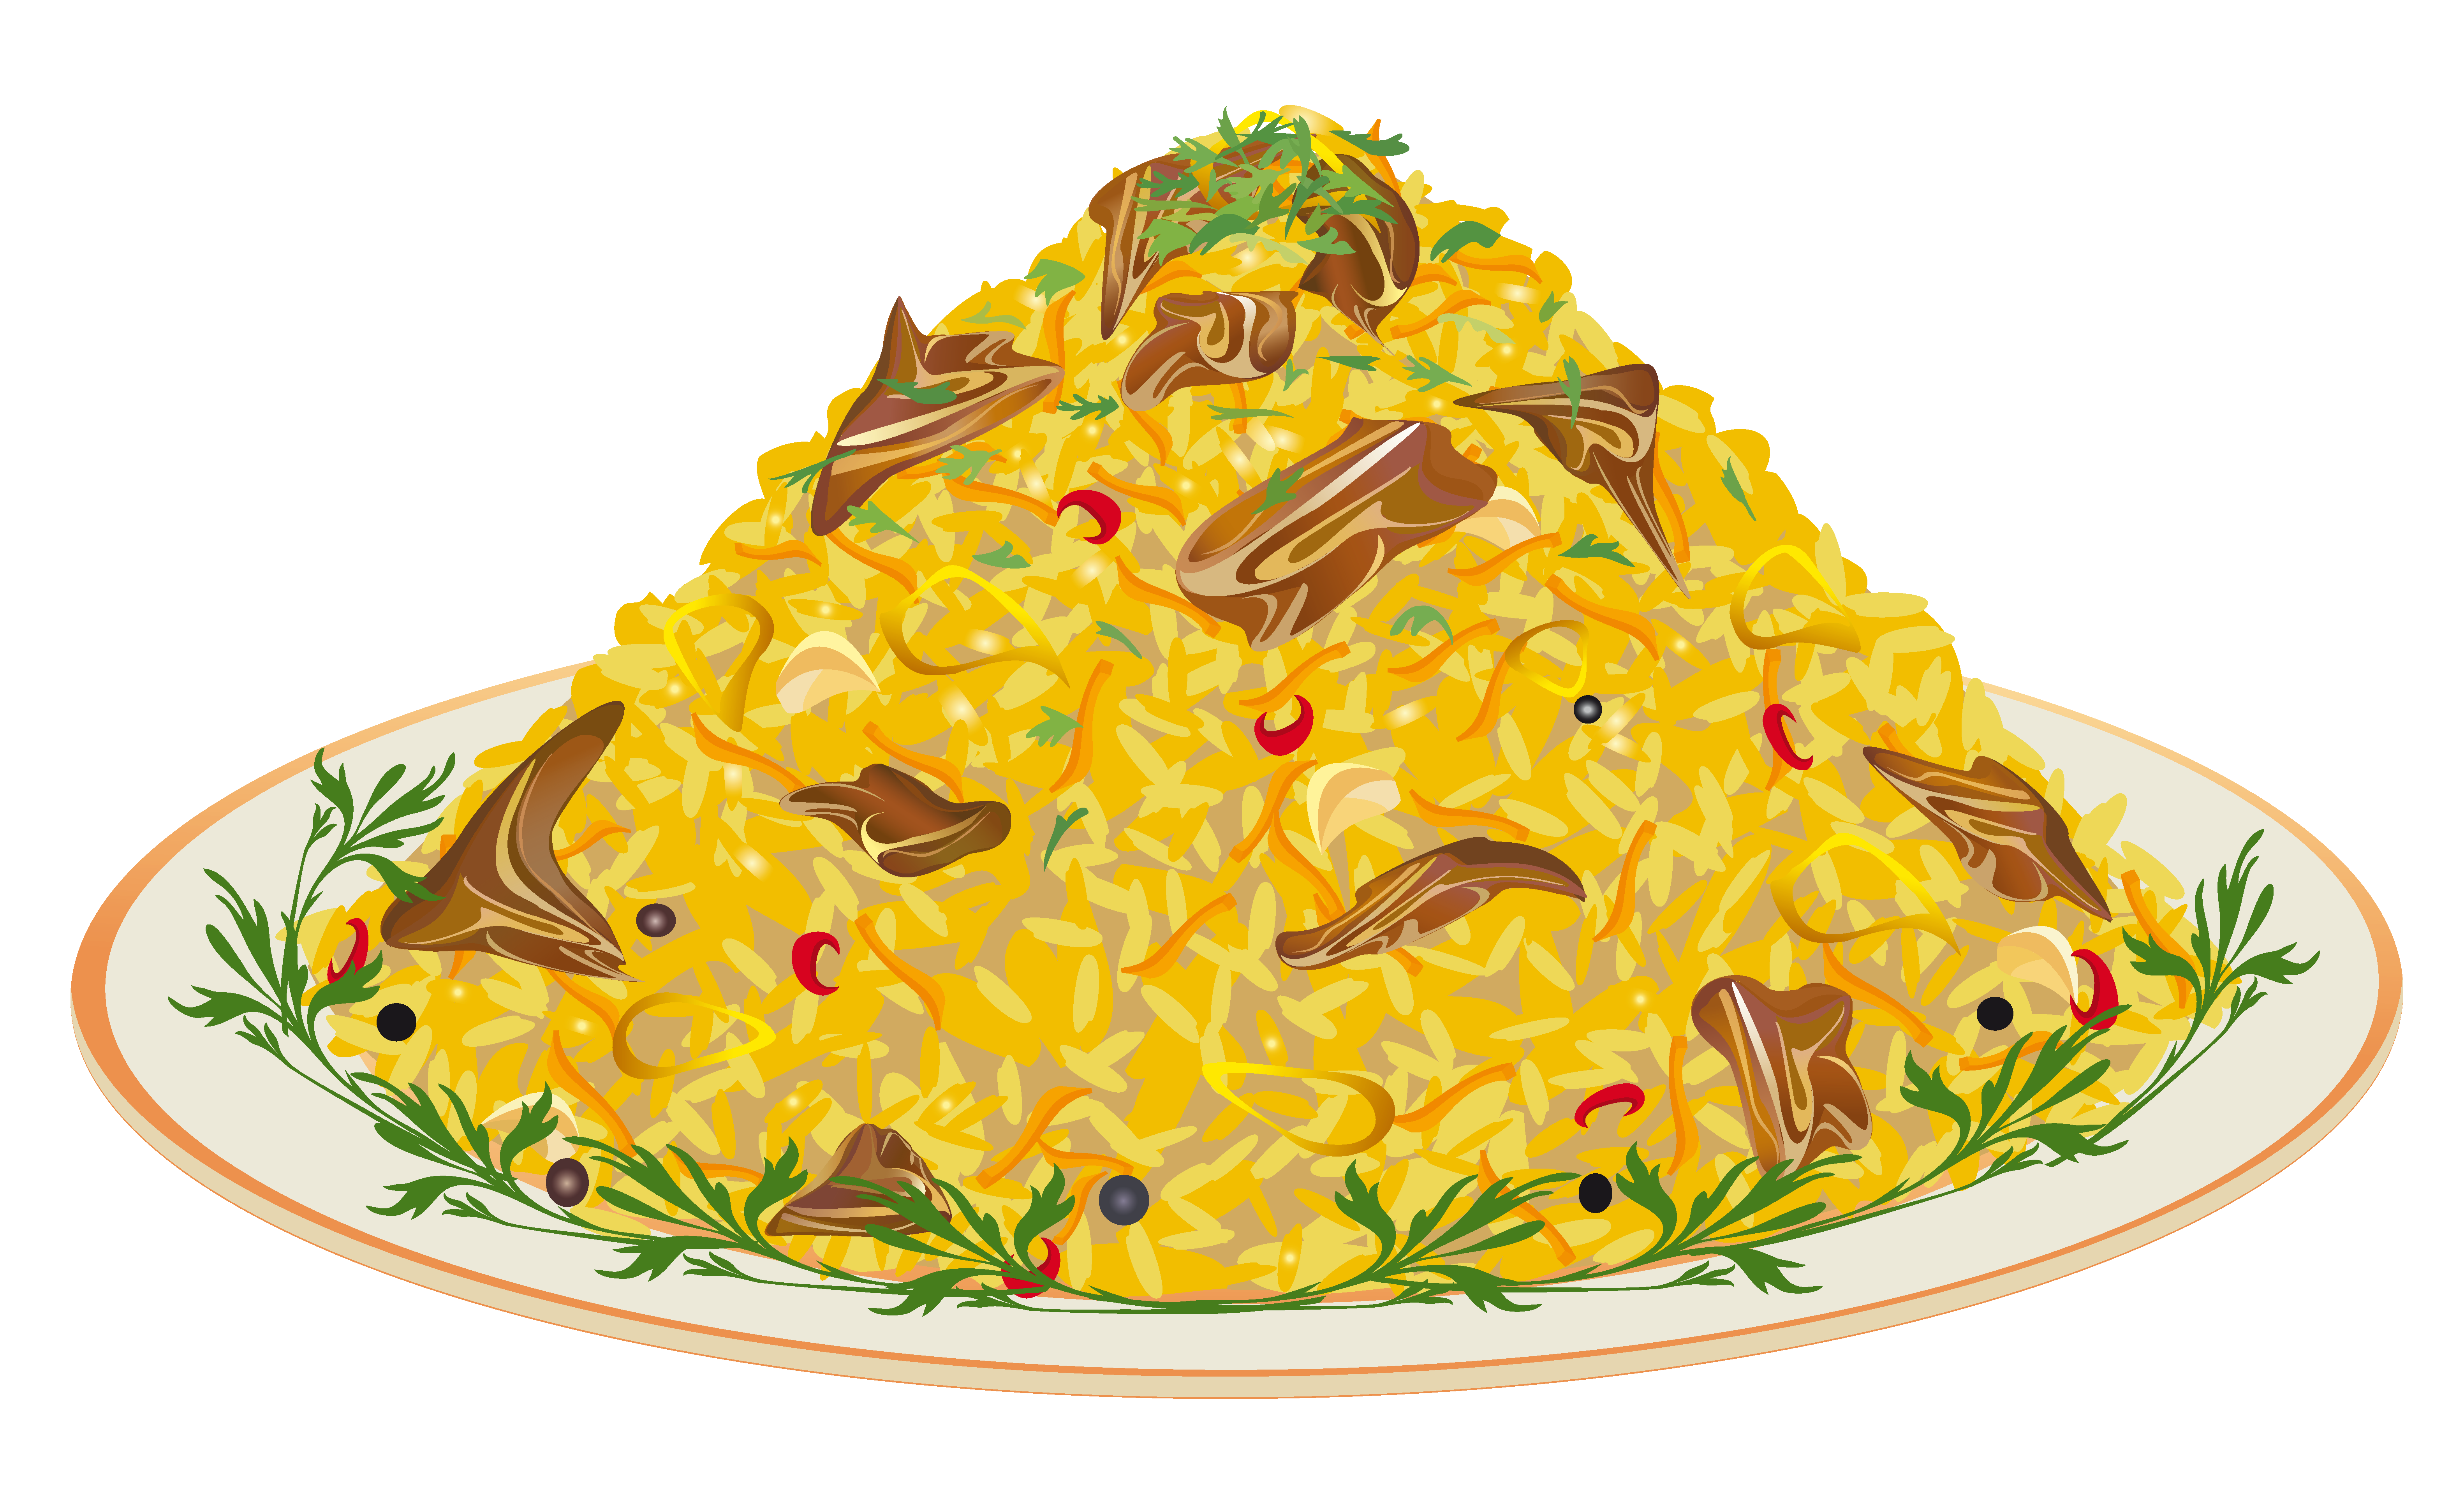 jpg free library Dish clipart side dish.  collection of dishes